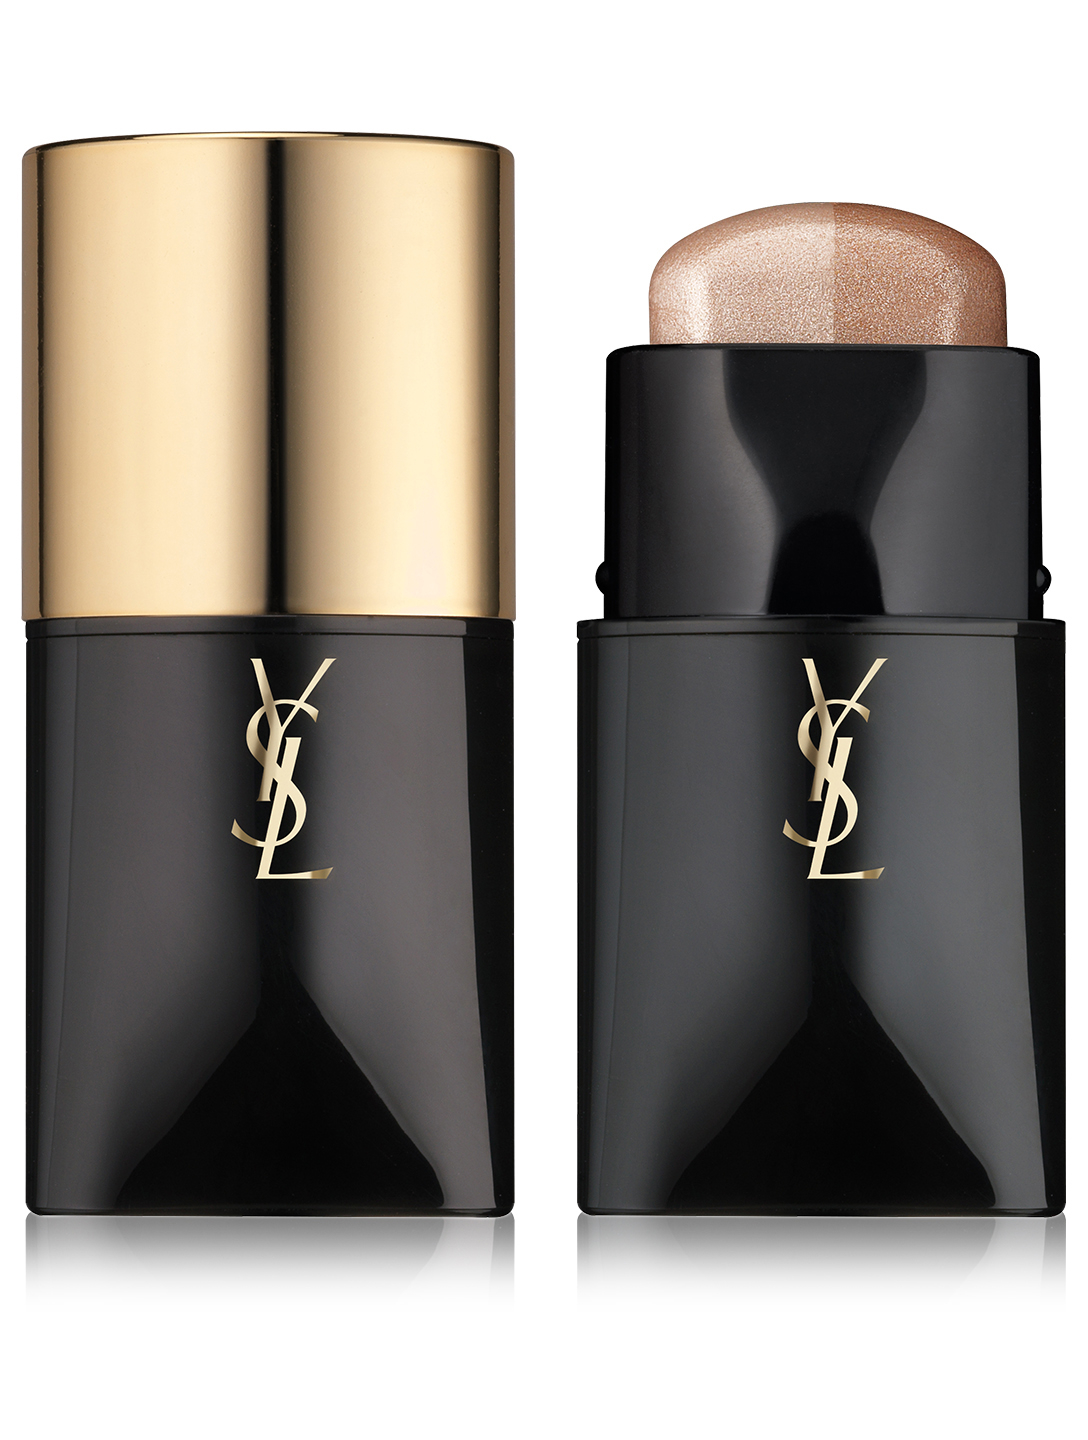 YVES SAINT LAURENT Face Highlighter - Gold Attraction Limited Edition Beauty Metallic